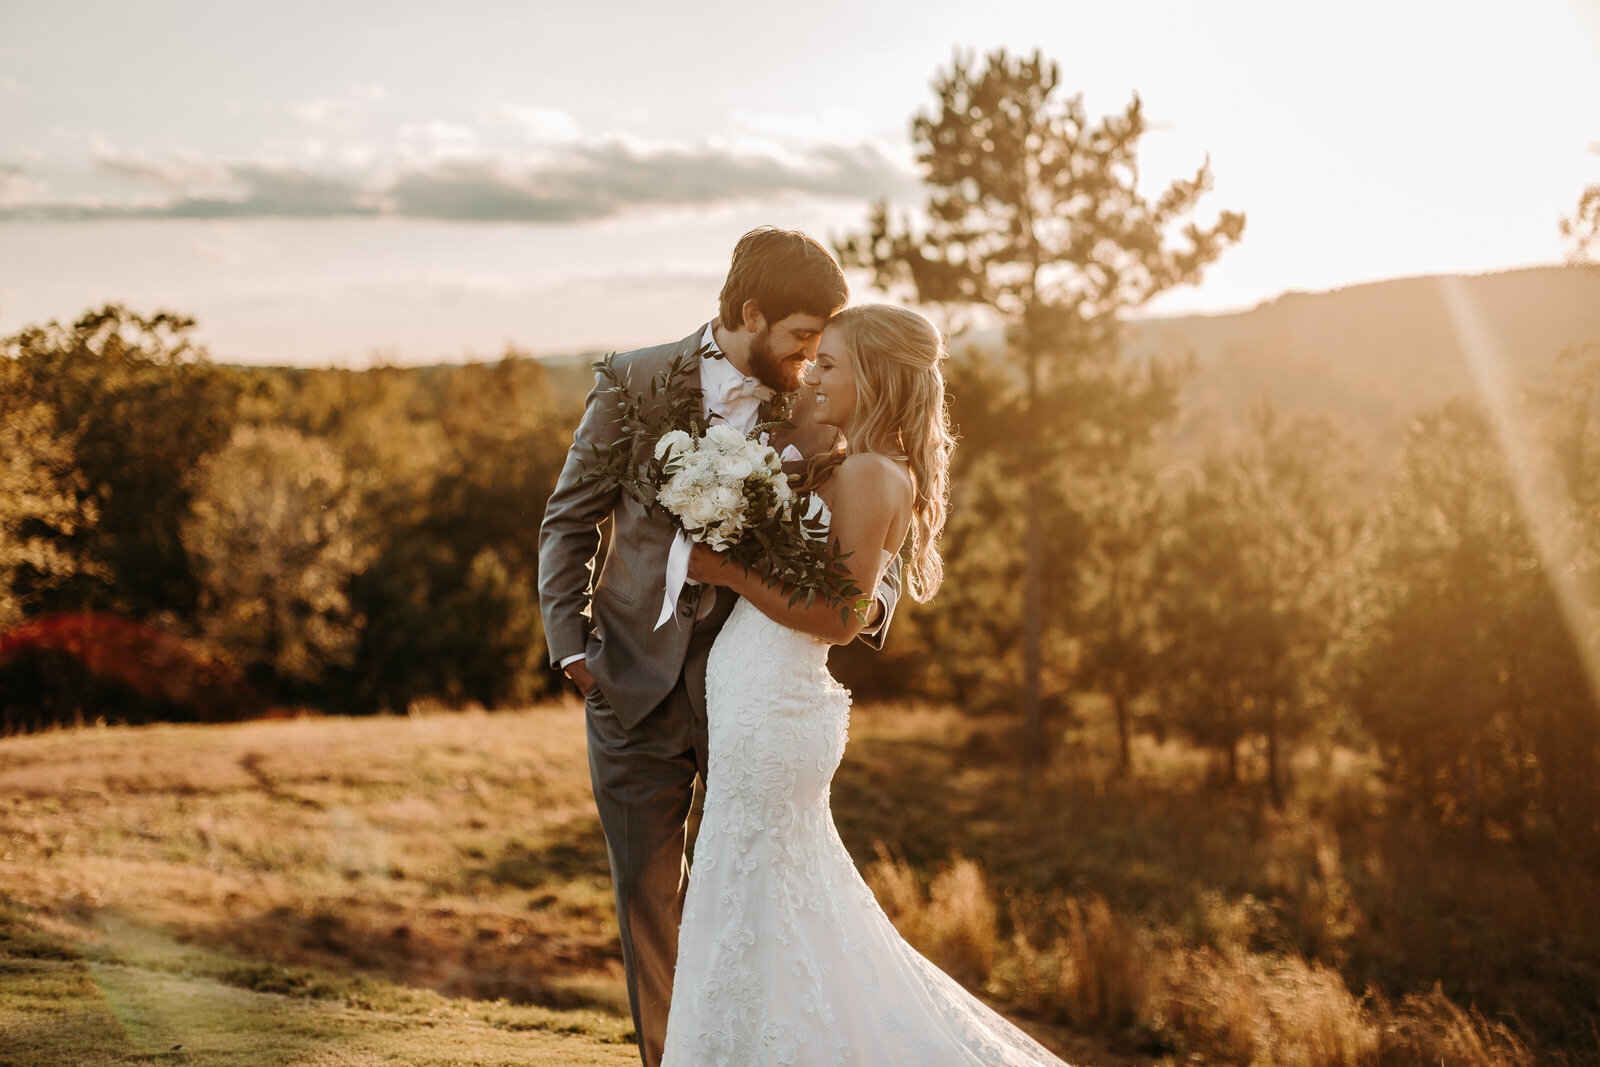 Bride and groom portraits in north Georgia mountains